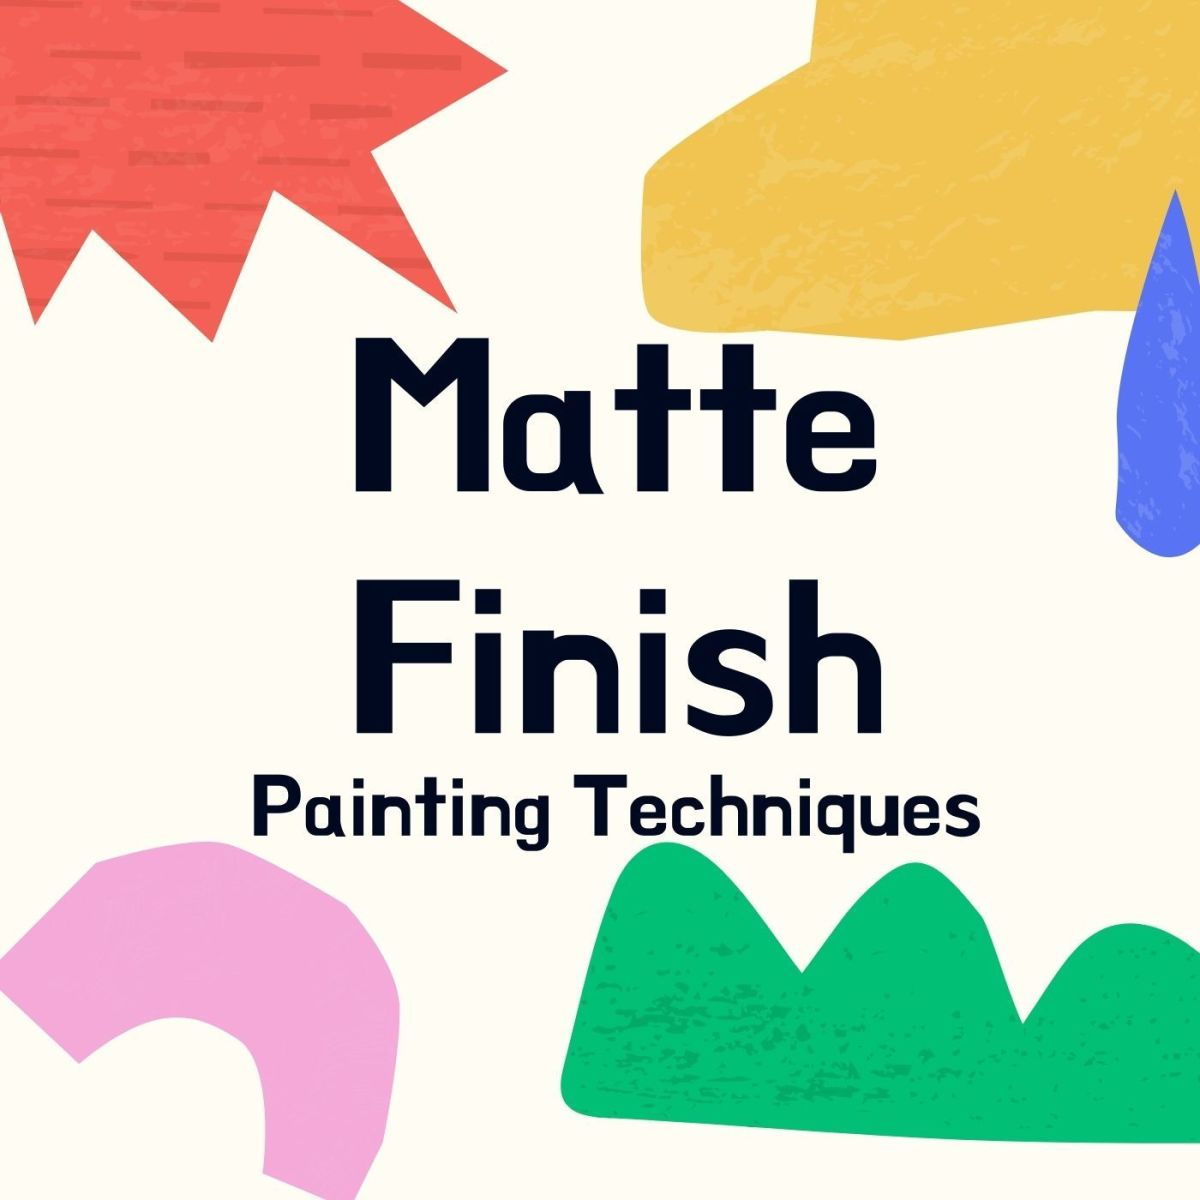 These 5 methods will help you get the matte finish of your dreams!